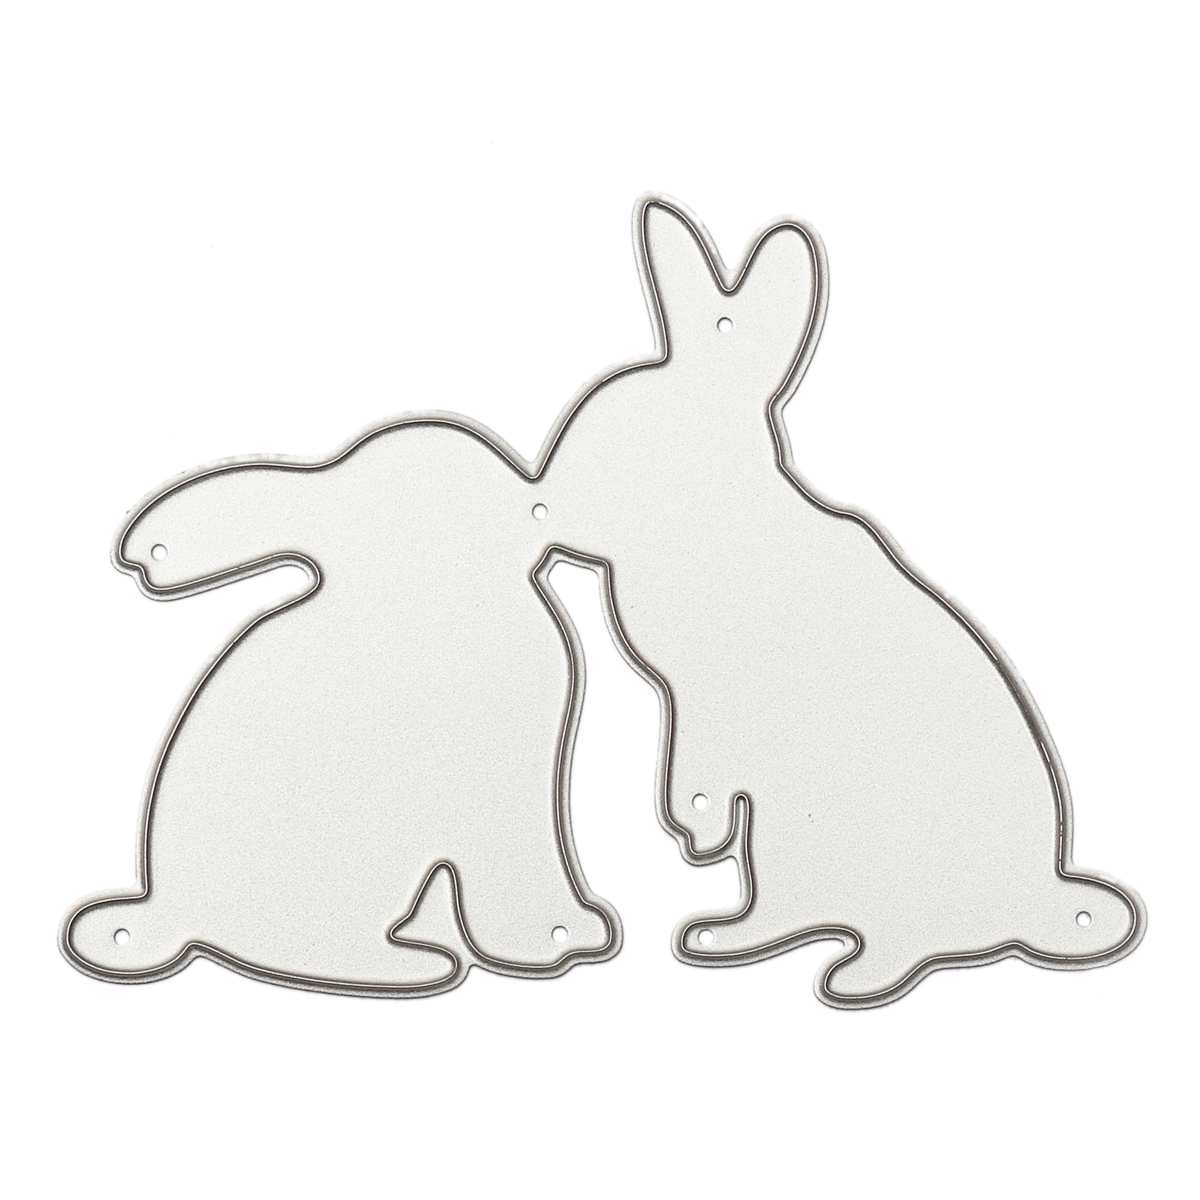 Kiss Bunny Metal Cutting Dies Stencils For DIY Scrapbooking Photo Album Paper Card Gift